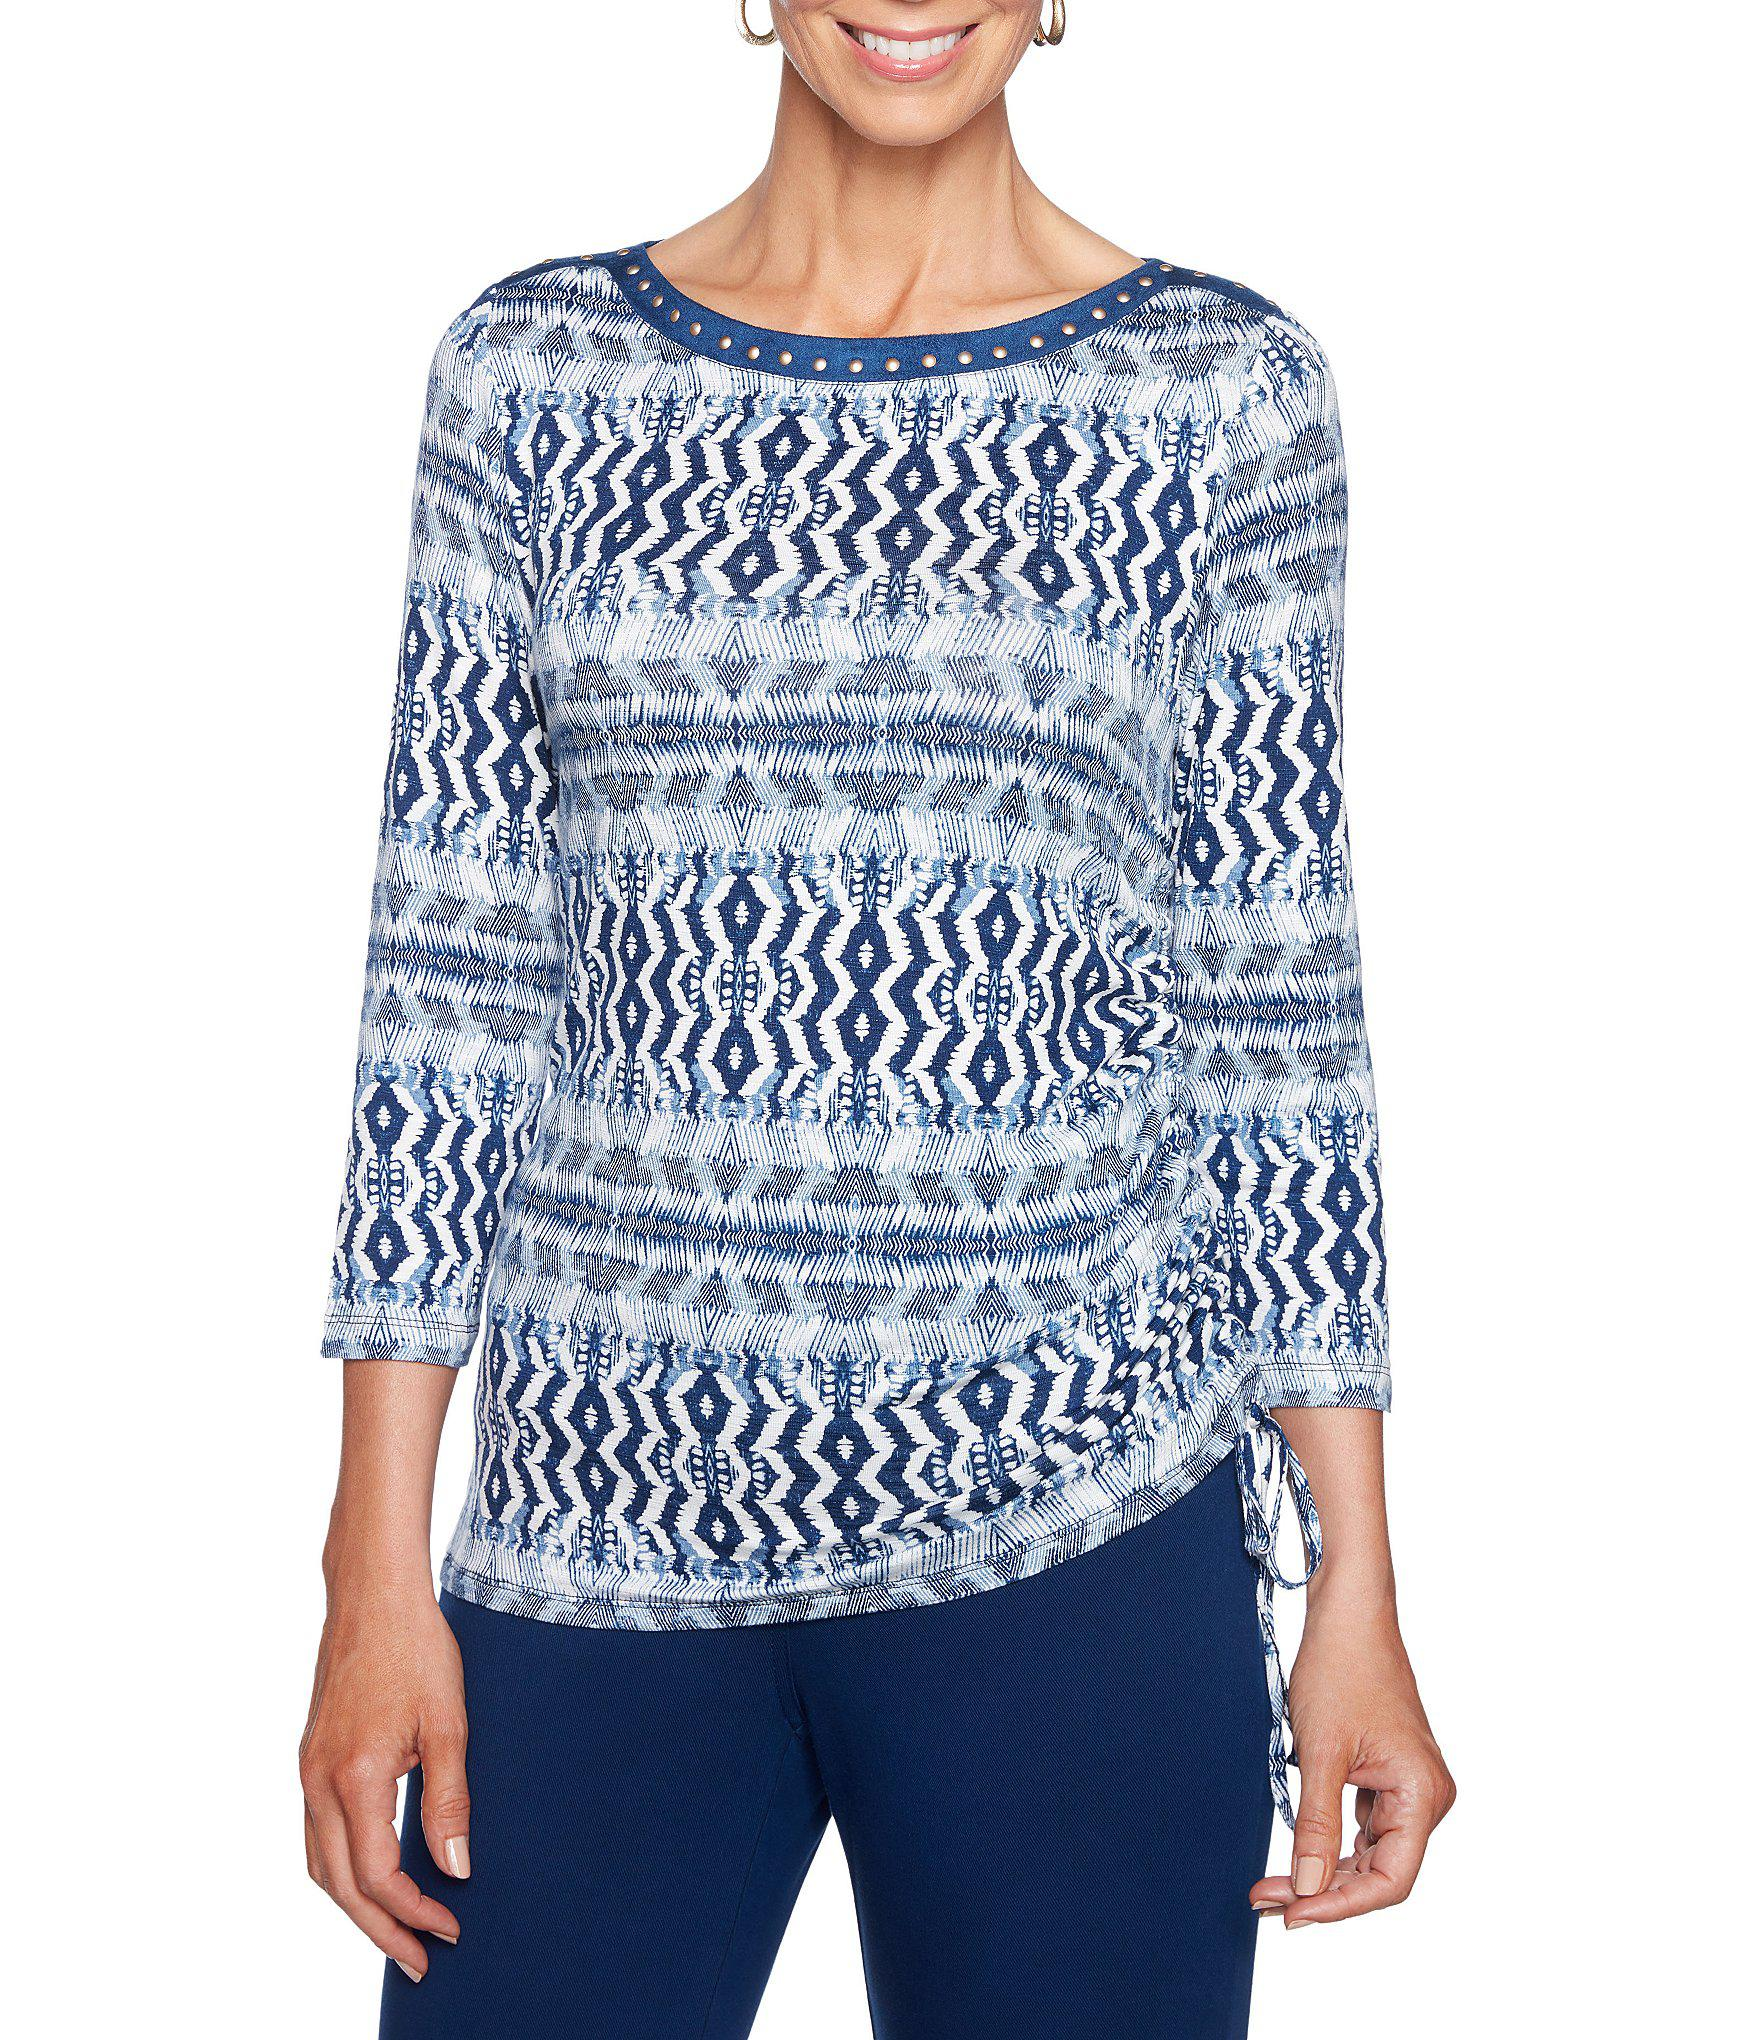 5dc4024e35d Ruby Rd. Women s Blue Embellished Ballet Neck Stripe Weave Print Side  Ruched Knit Top